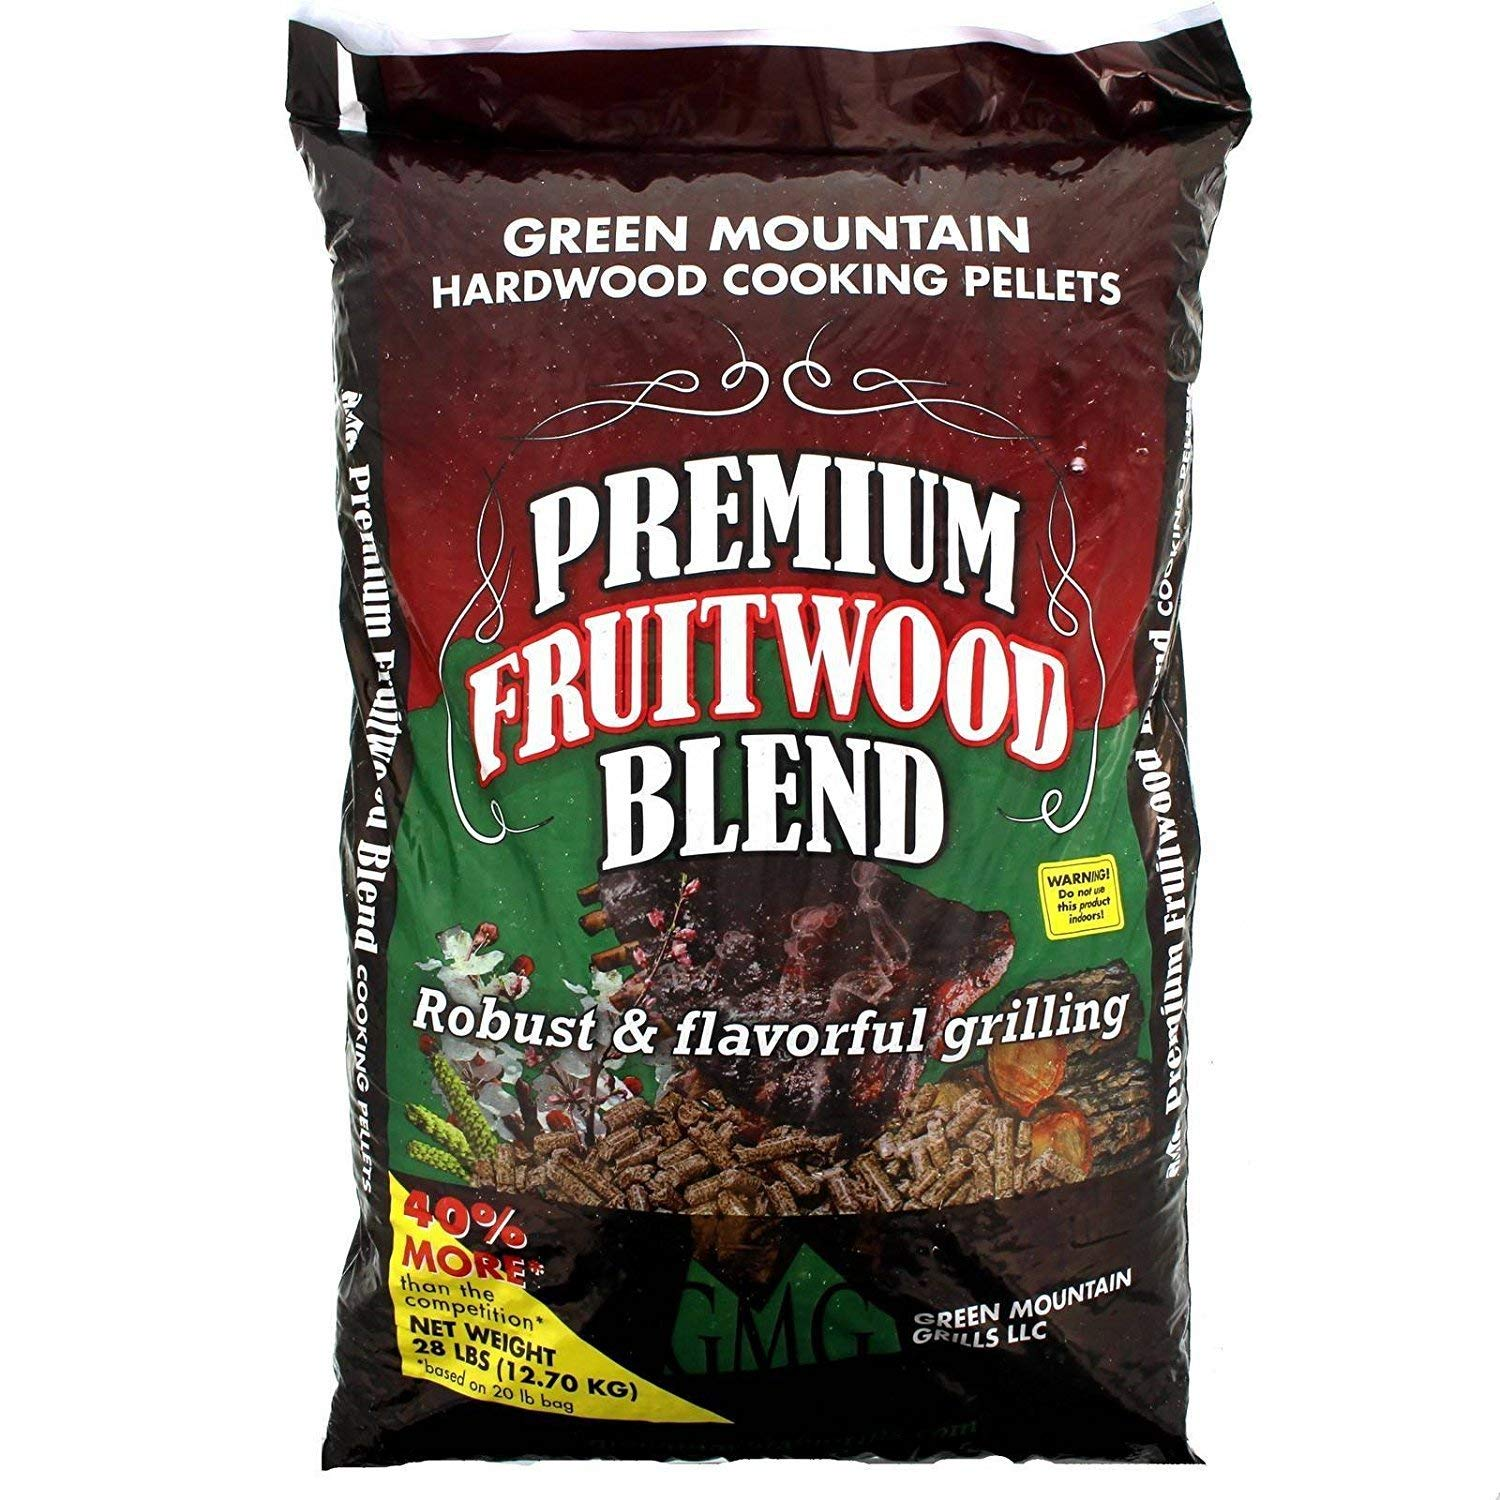 Green Mountain Grill Gmg-2003 Premium Fruitwood Blend Pellets 28 Lb Bag by Green Mountain Grills